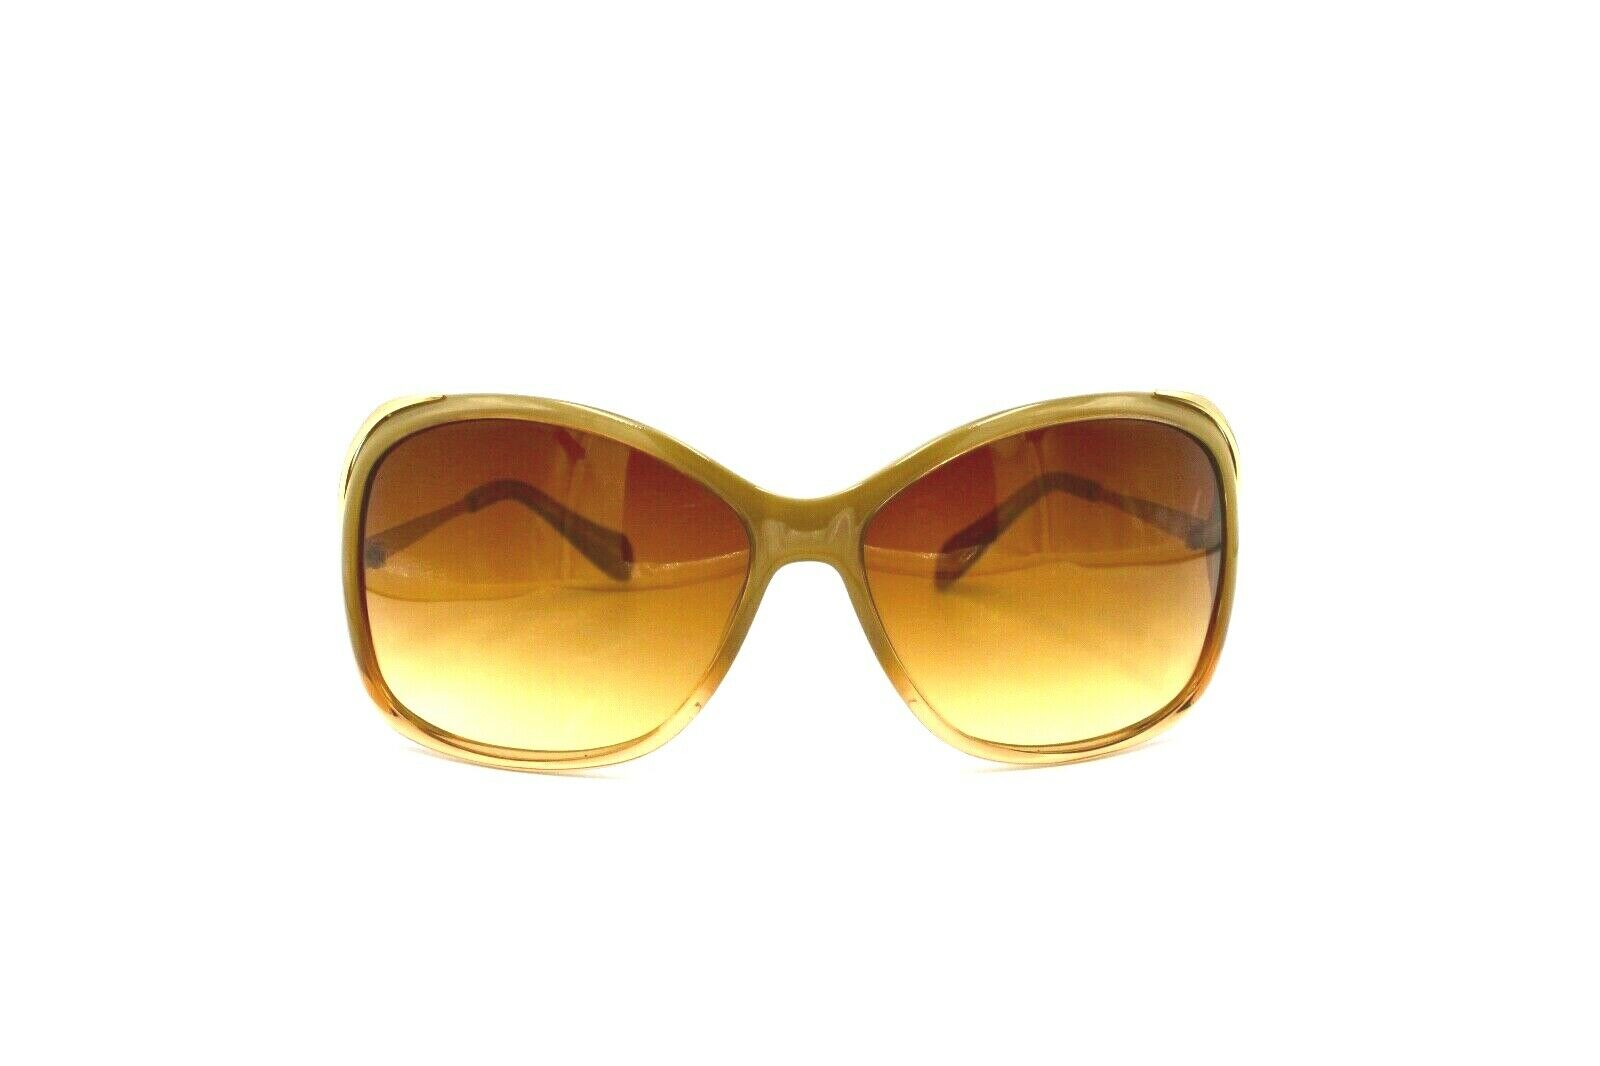 Oliver Peoples Sunglasses 65 15-115 Marbella TZGR Made in Japan - Mydesigneroptic